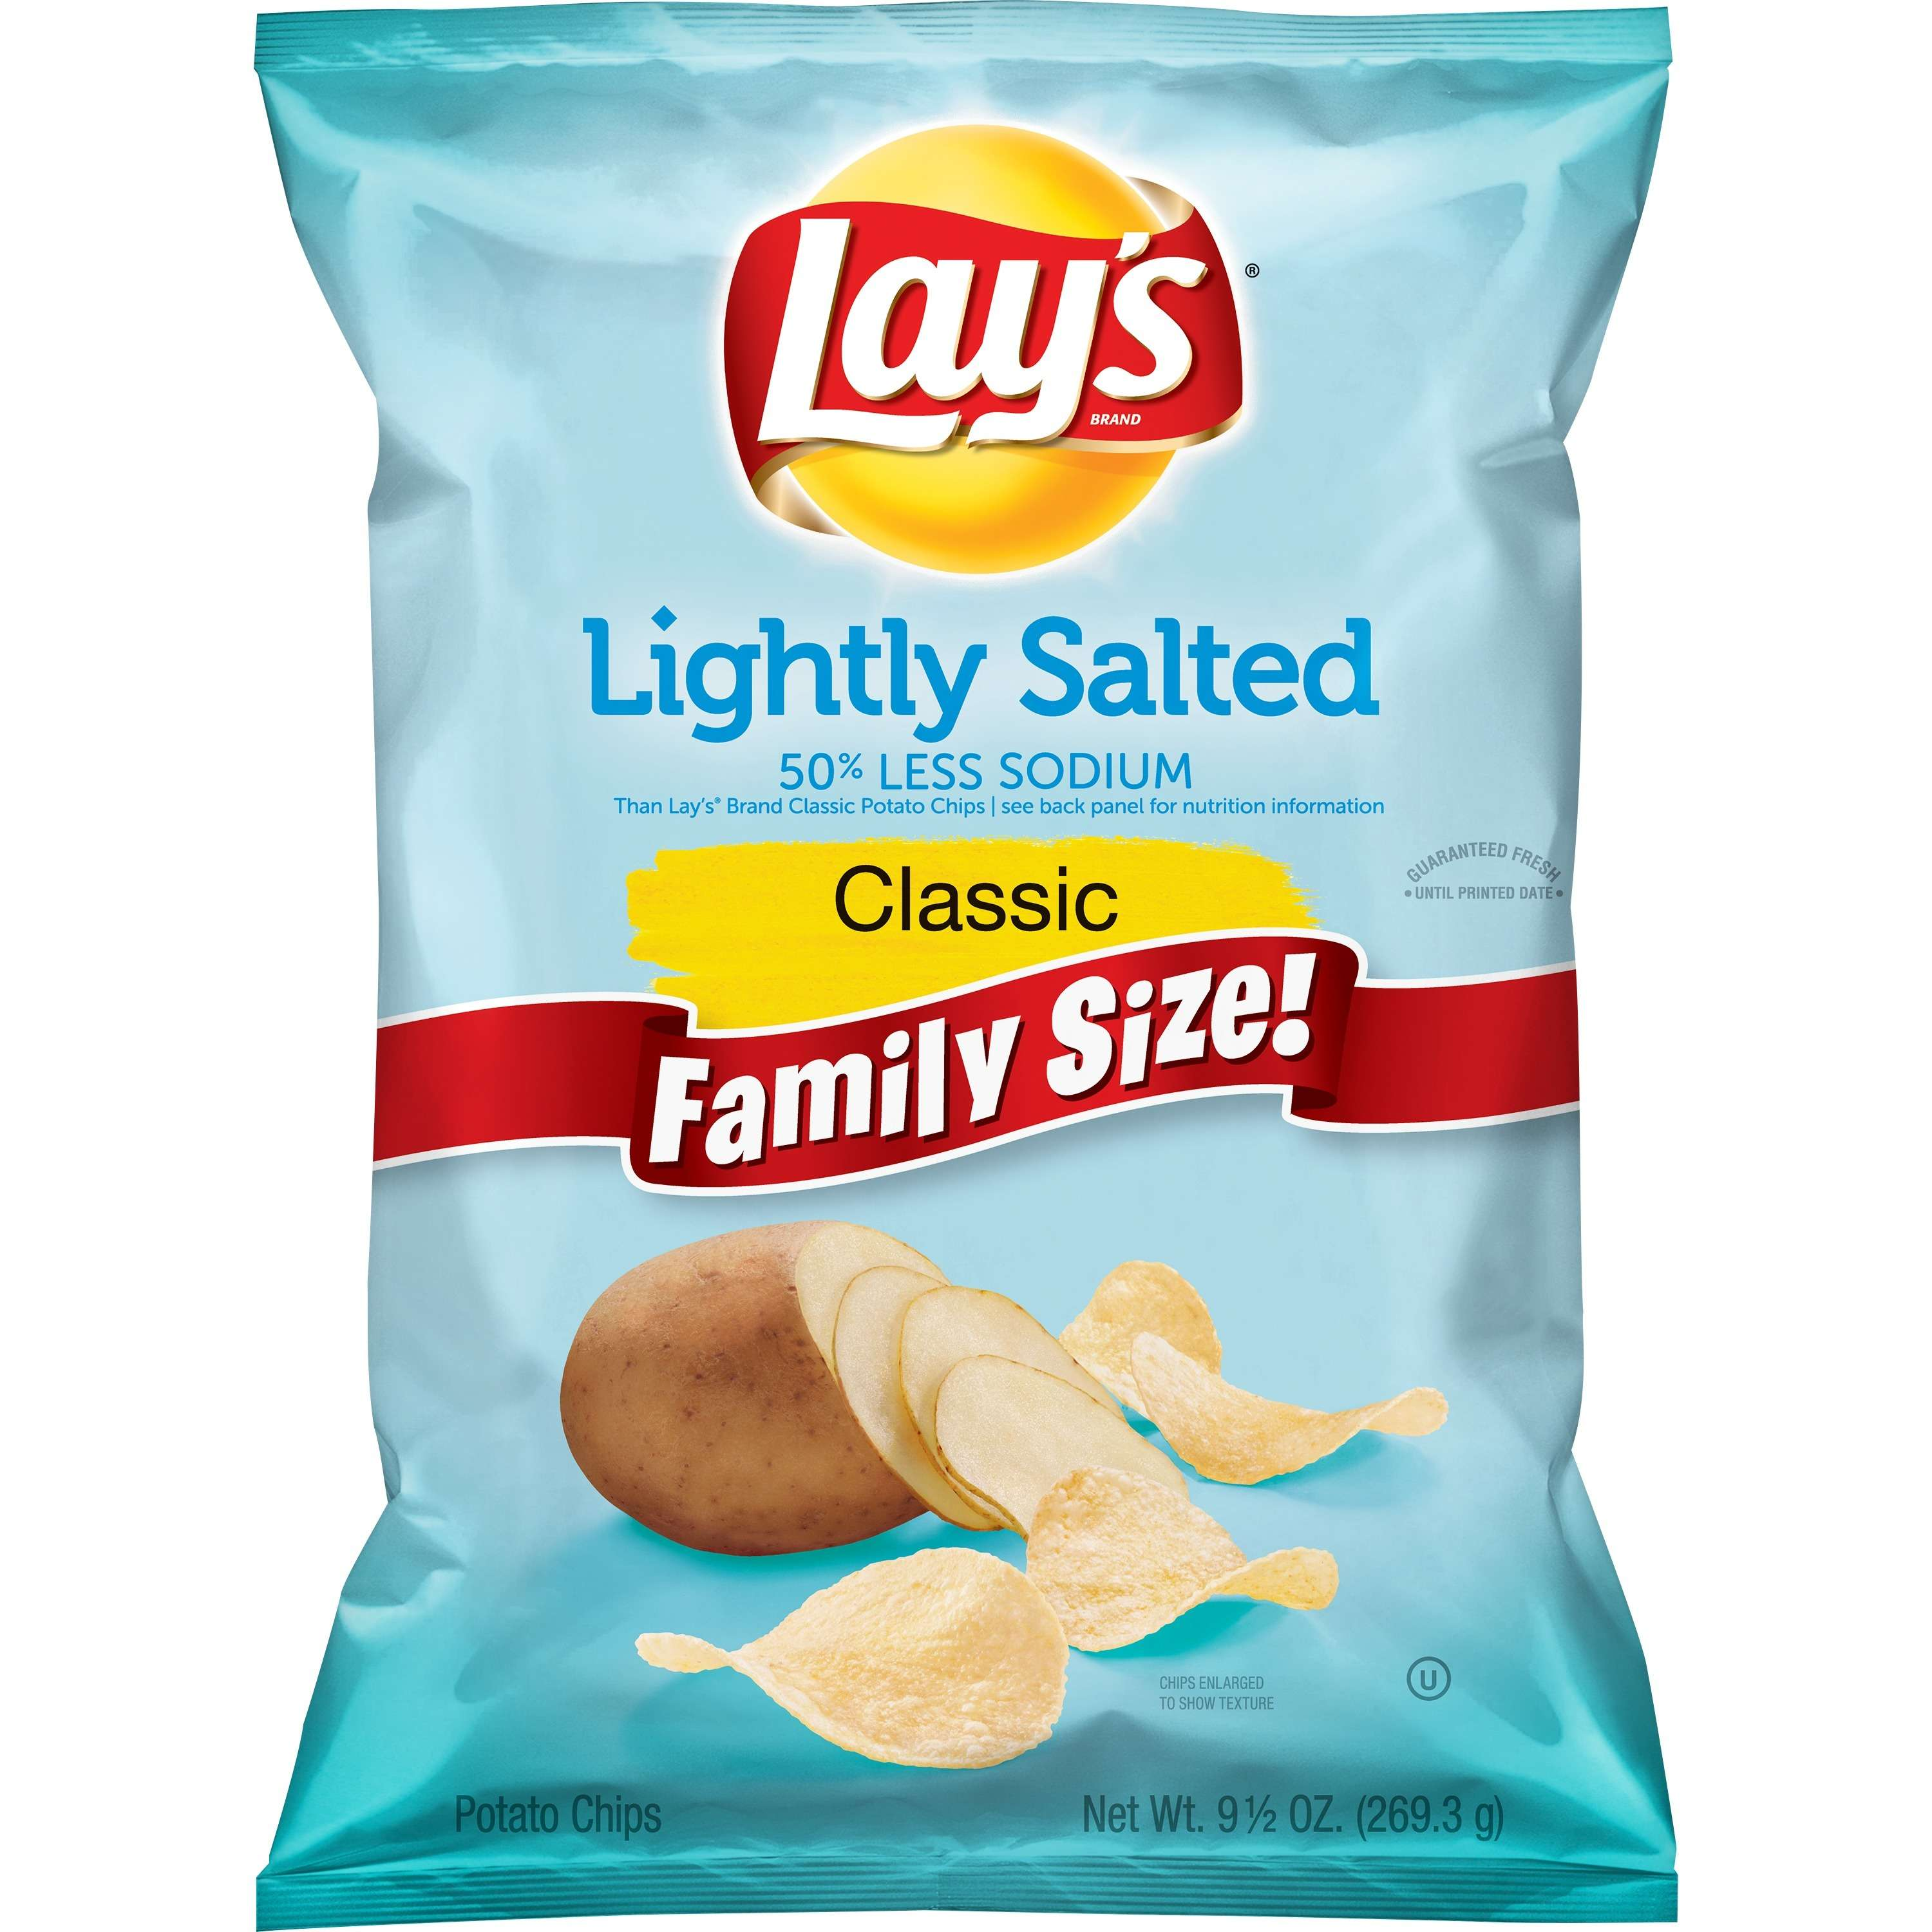 Lay's Lightly Salted Potato Chips, Family Size, 9.5 oz Bag